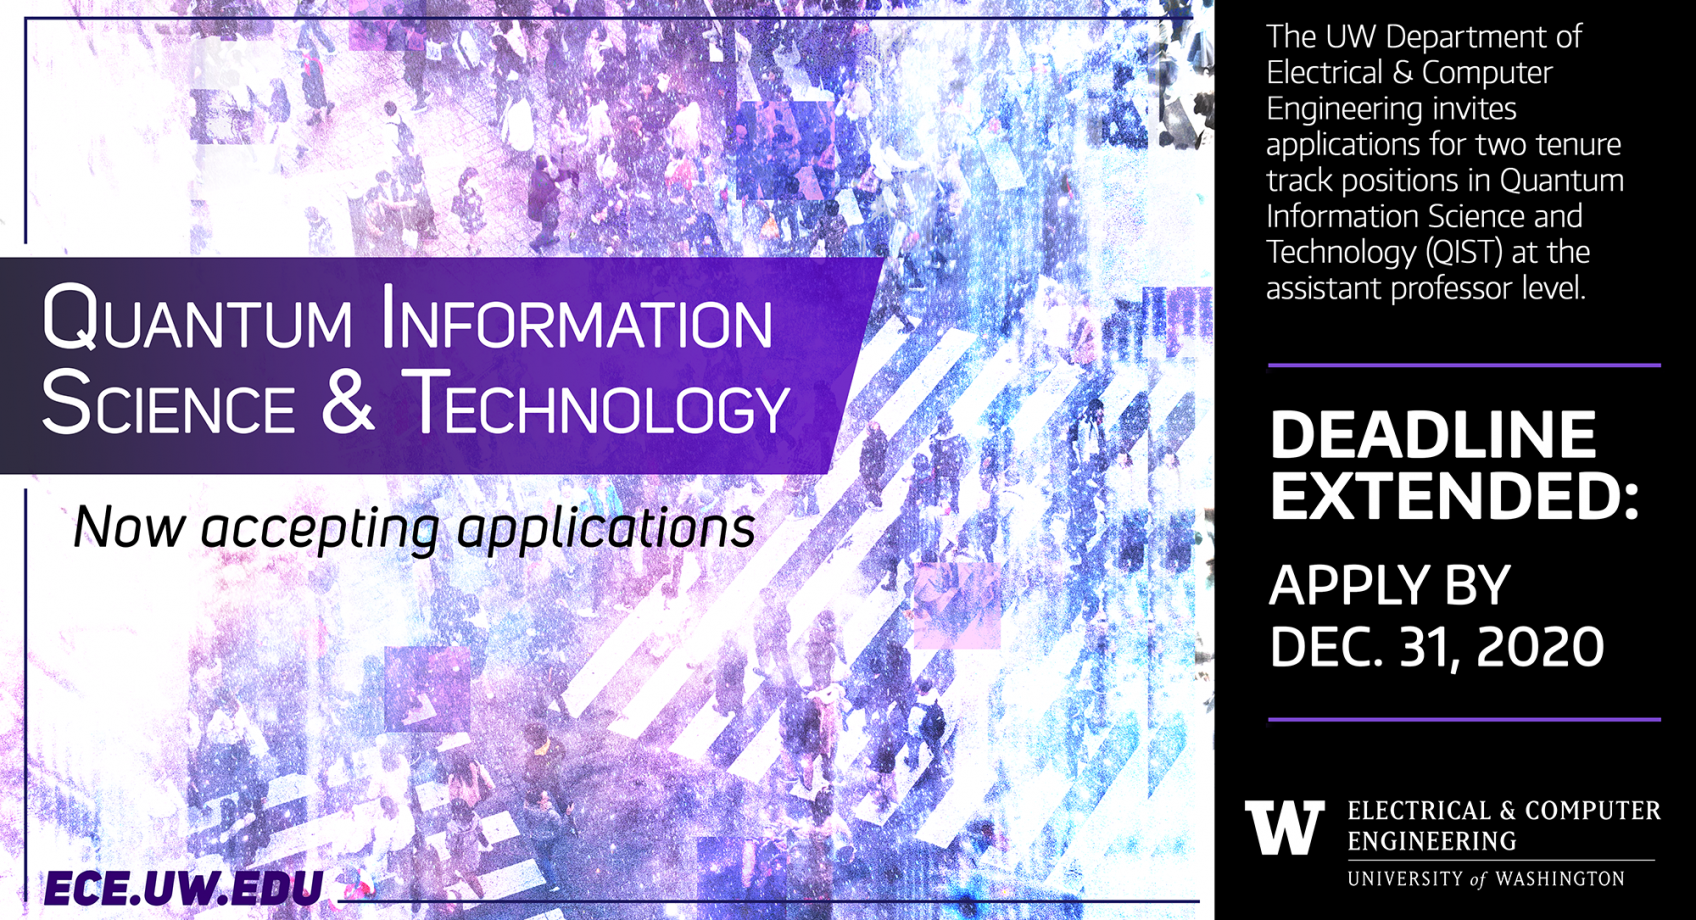 UW ECE seeks outstanding faculty candidates in quantum information science & technology (UPDATE: Deadline extended to December 31, 2020) Banner